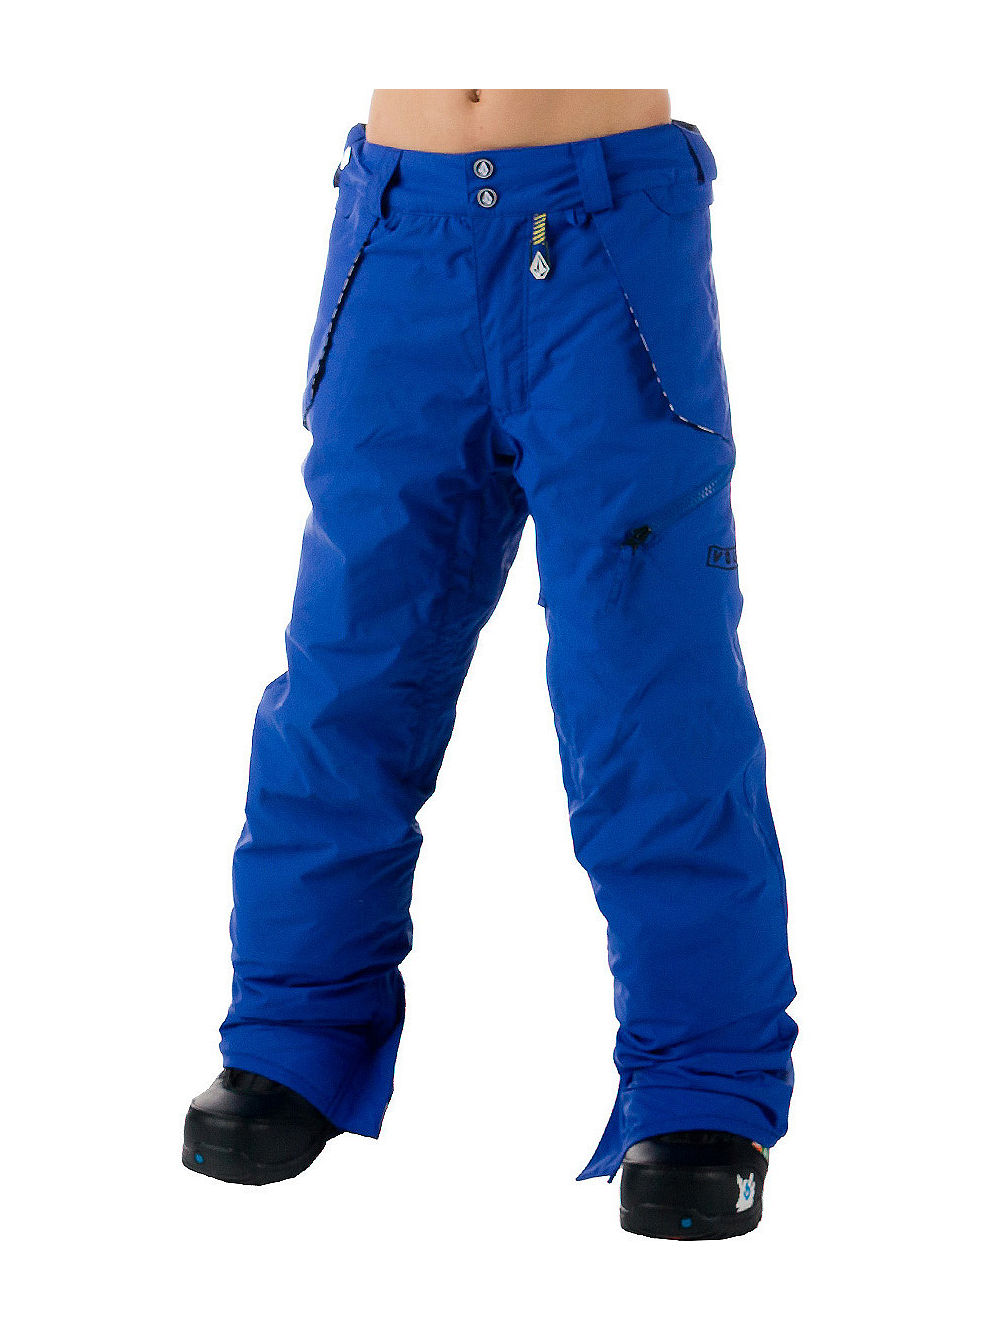 Outpost Insulated Pant Youth